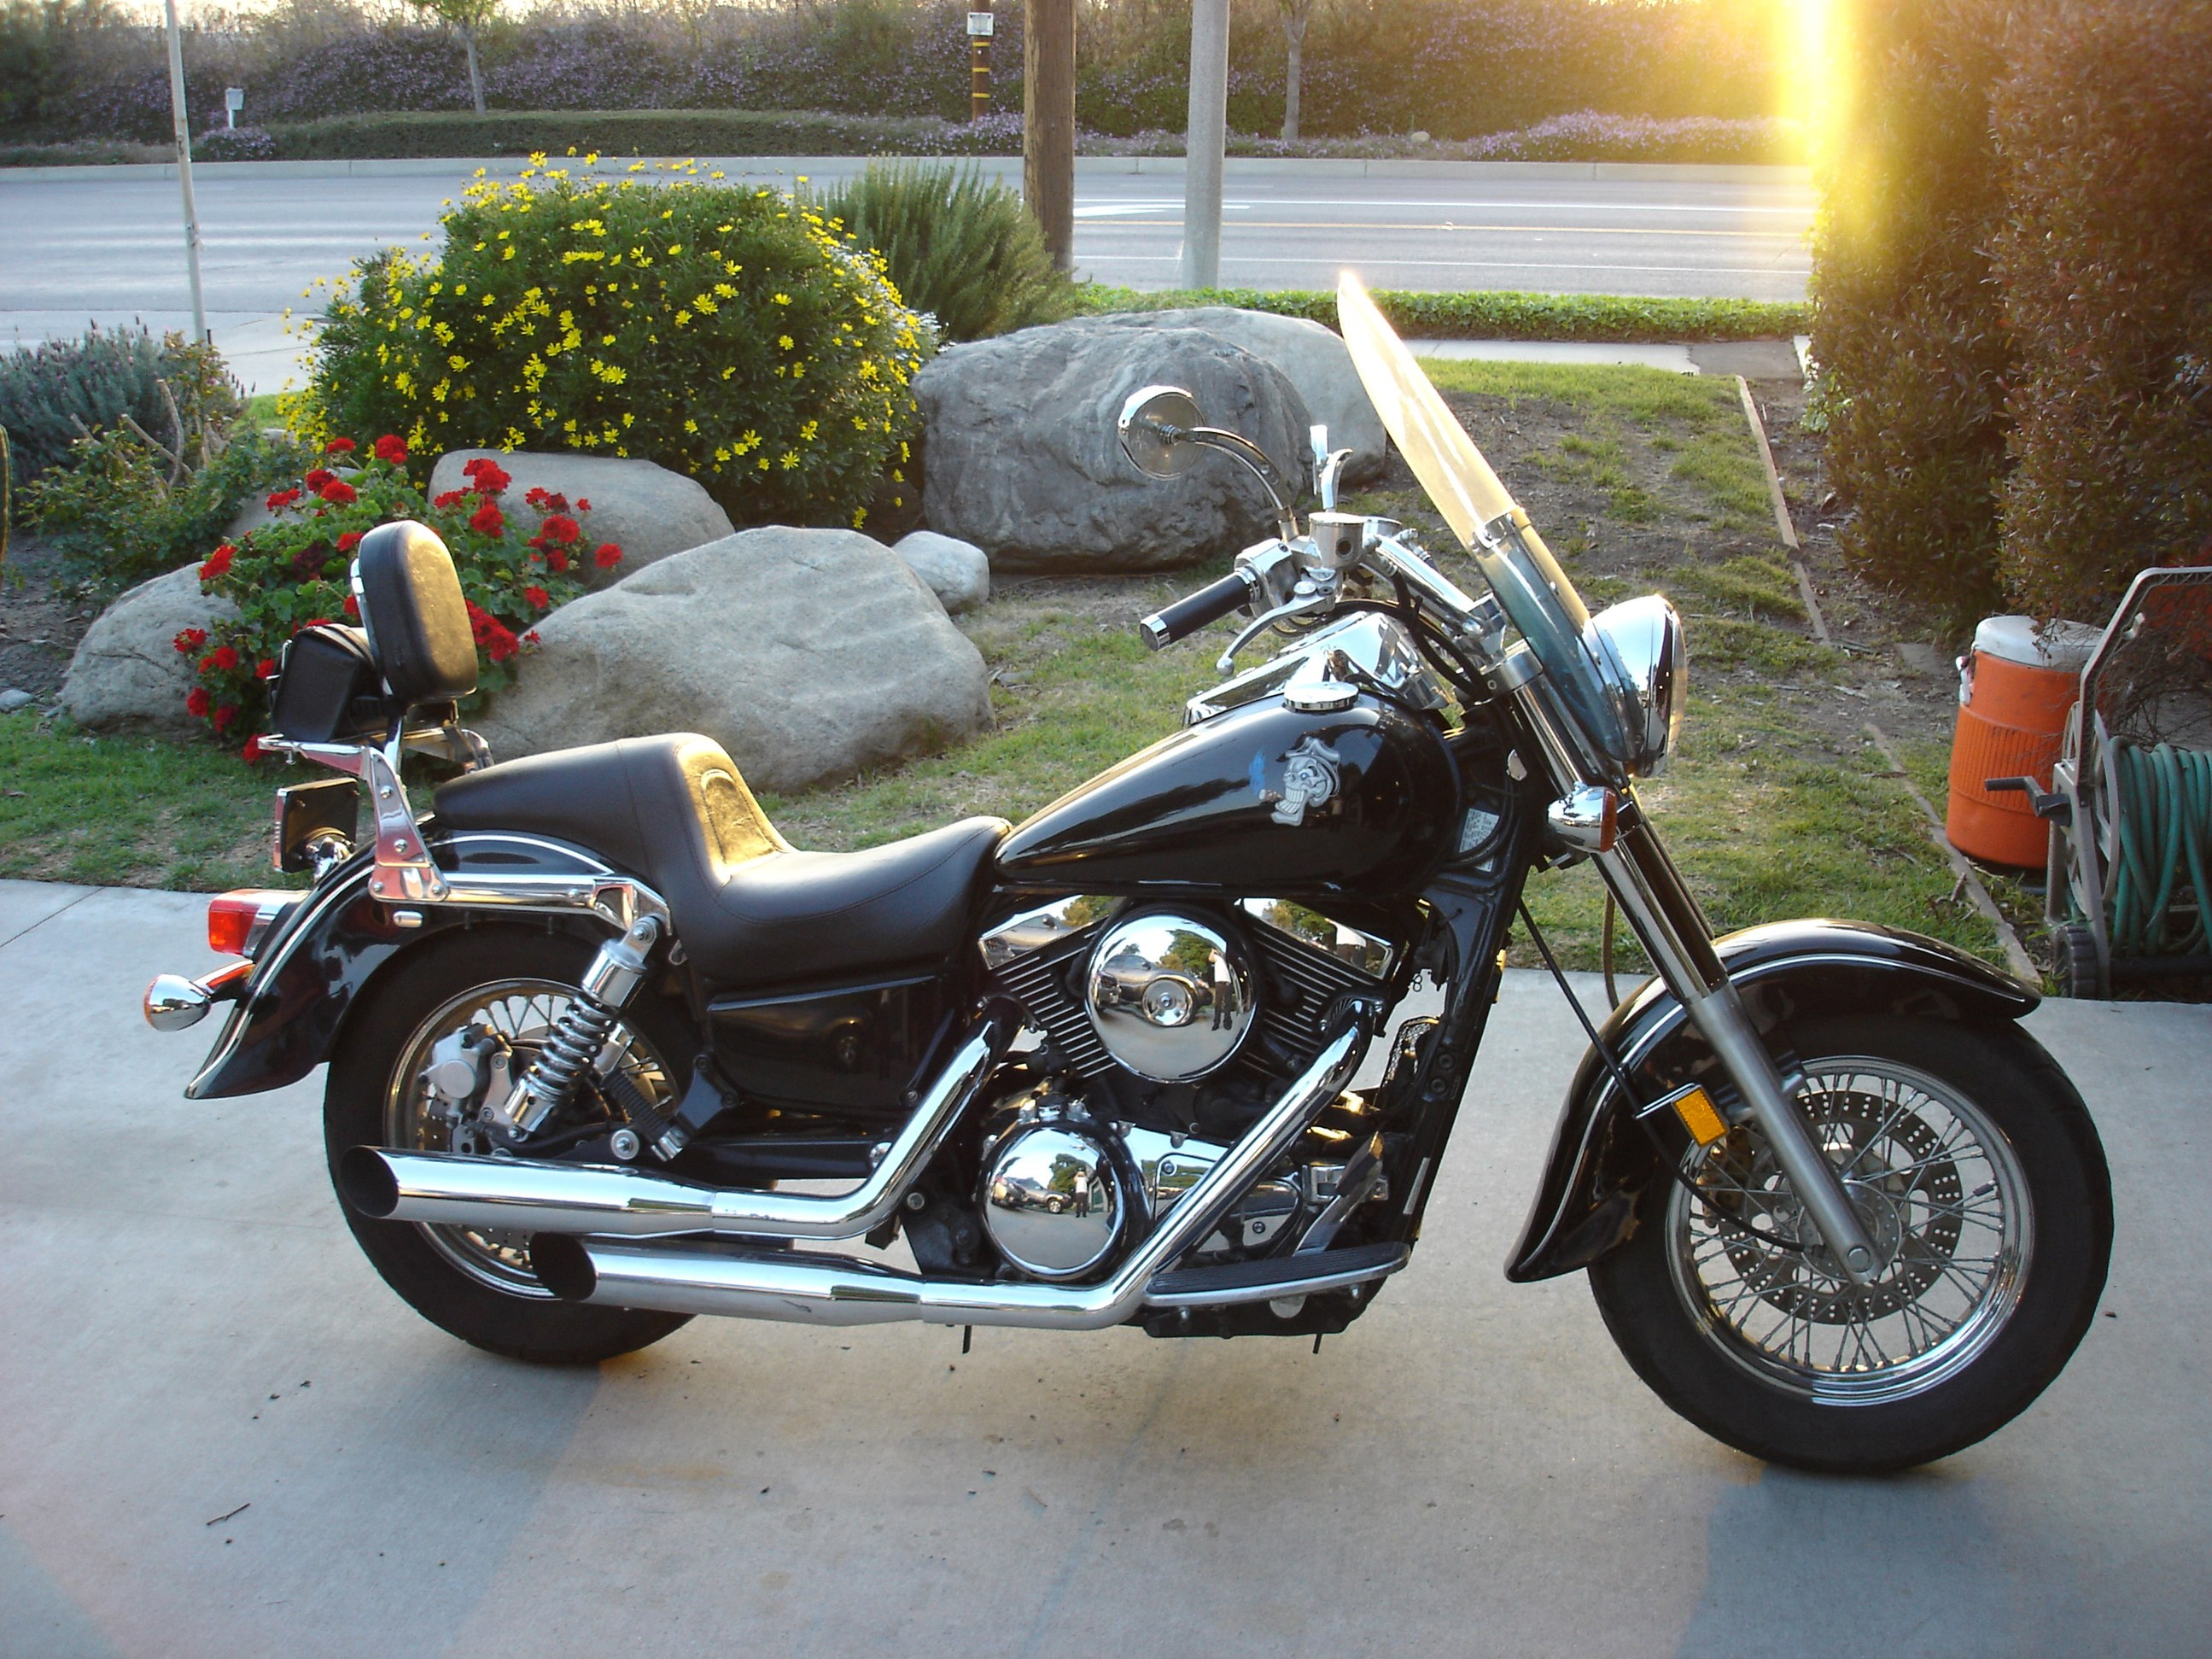 Kawasaki Vulcan - The complete information and online sale